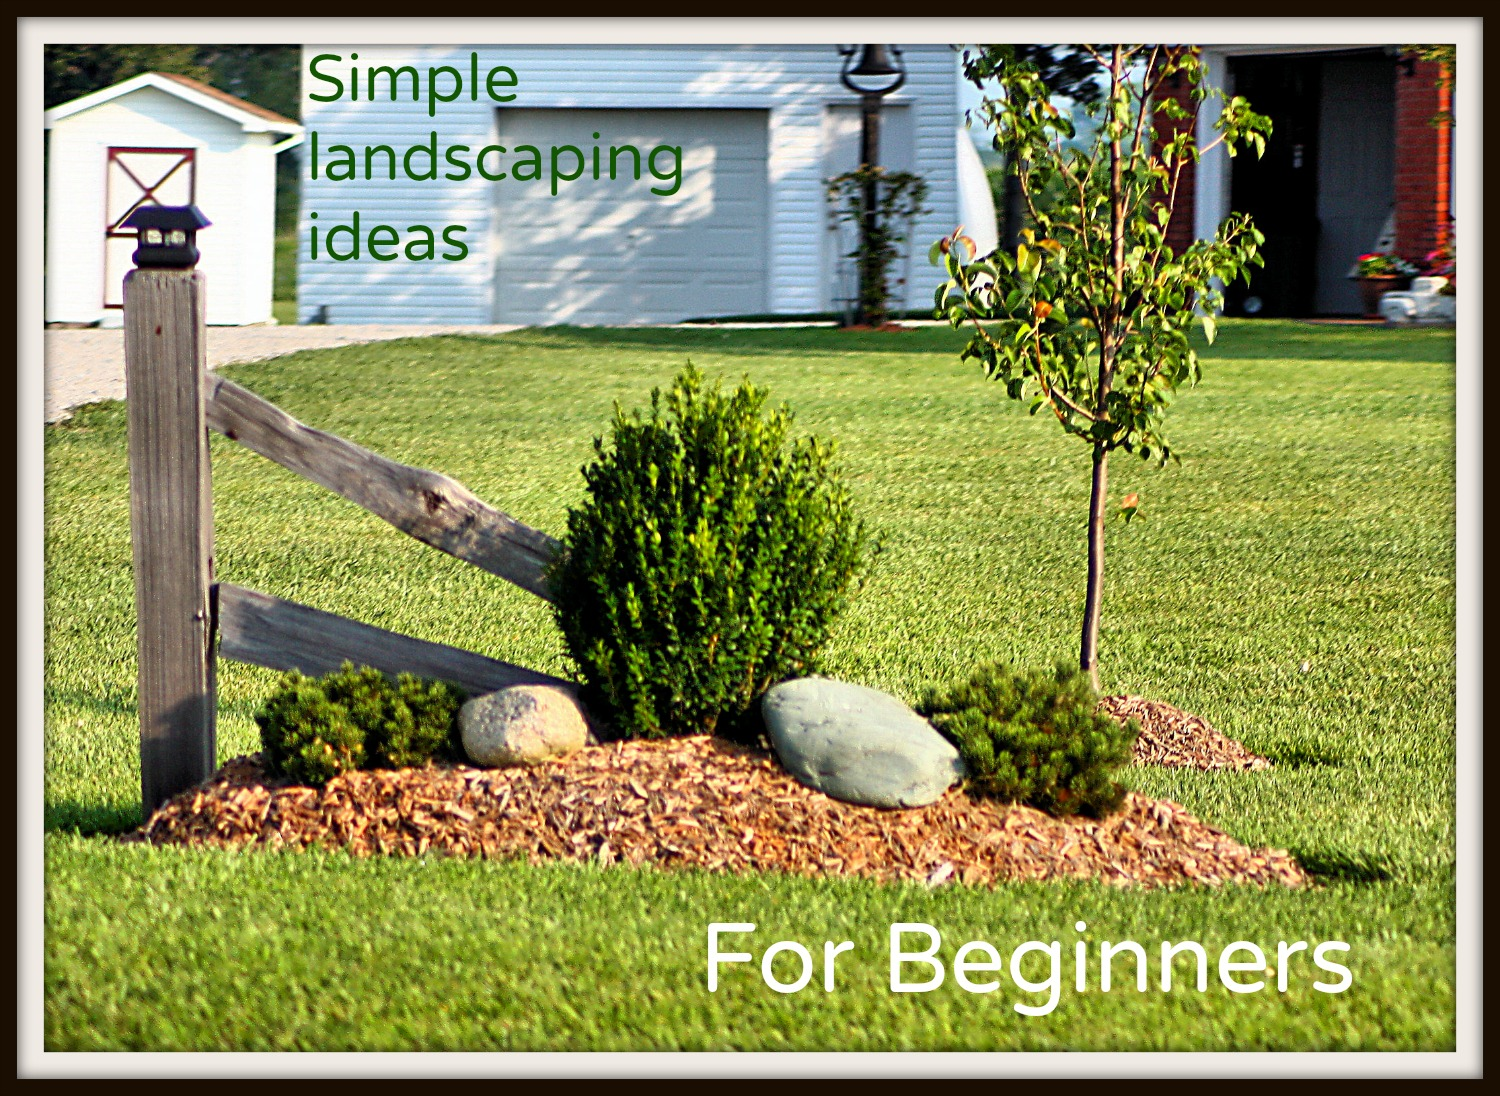 Simple landscaping ideas for beginners frador for Landscaping tips